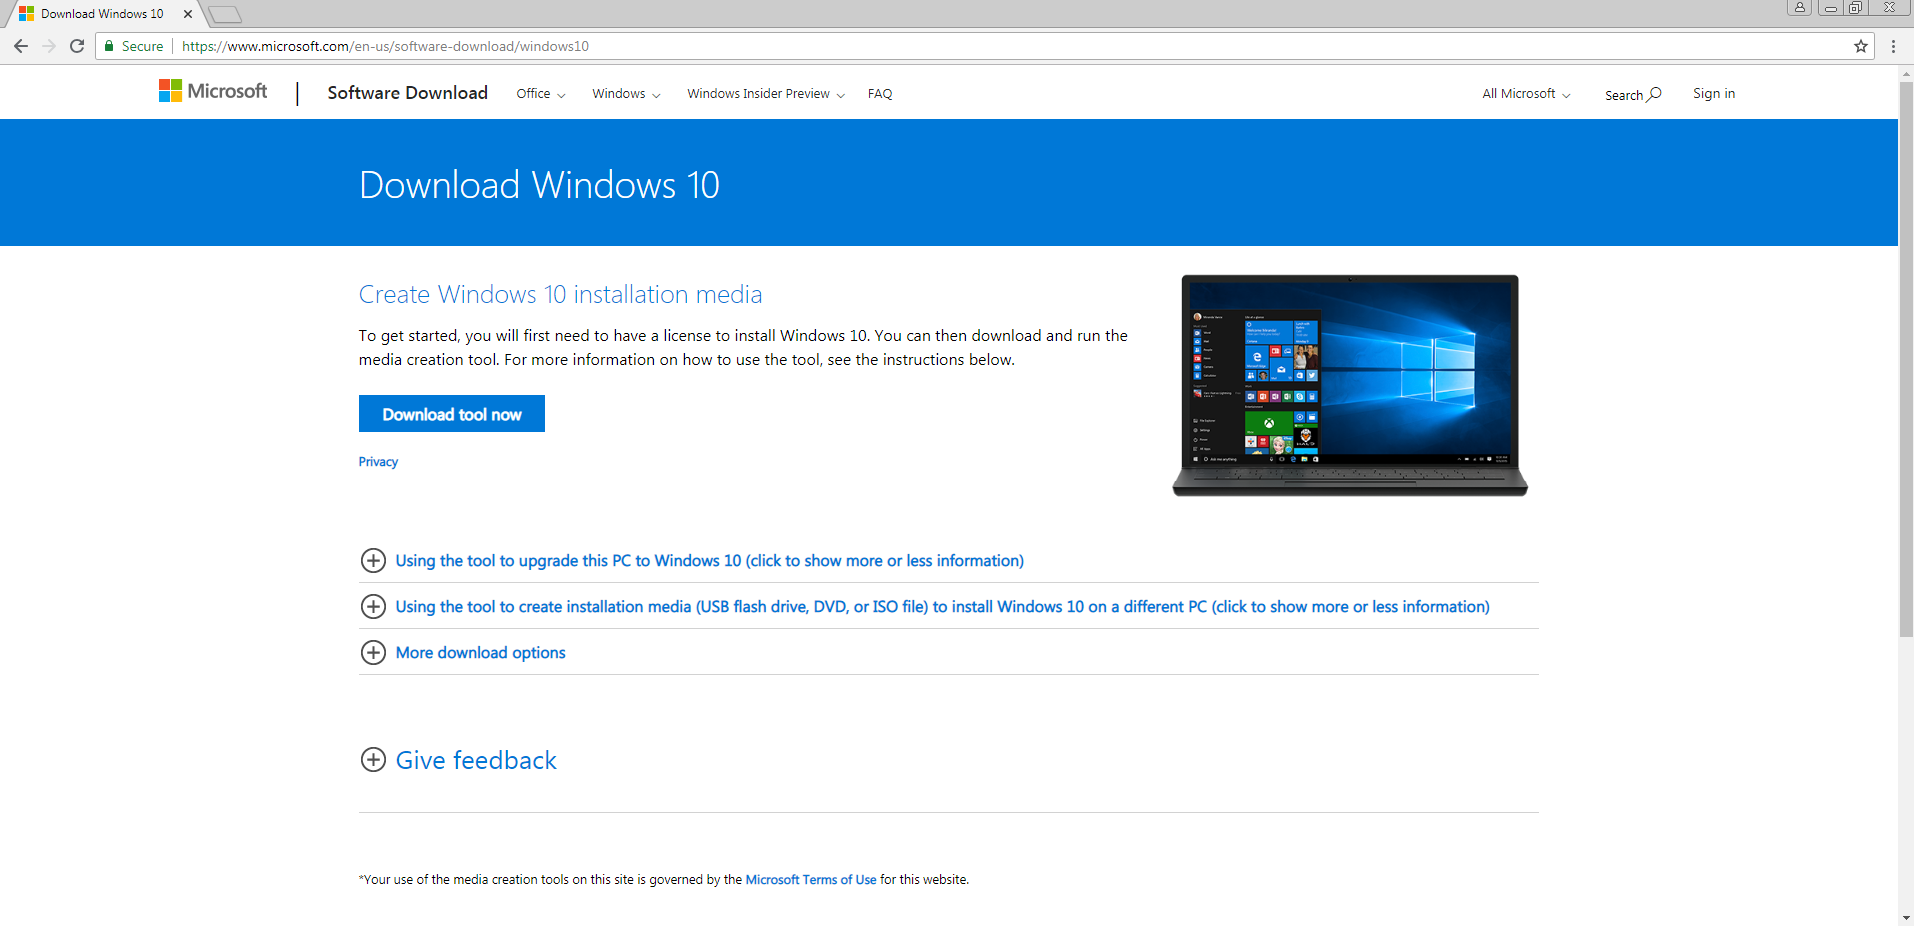 Upgrade to Windows 10 for FREE Using Microsoft's Own Media Creation Tool